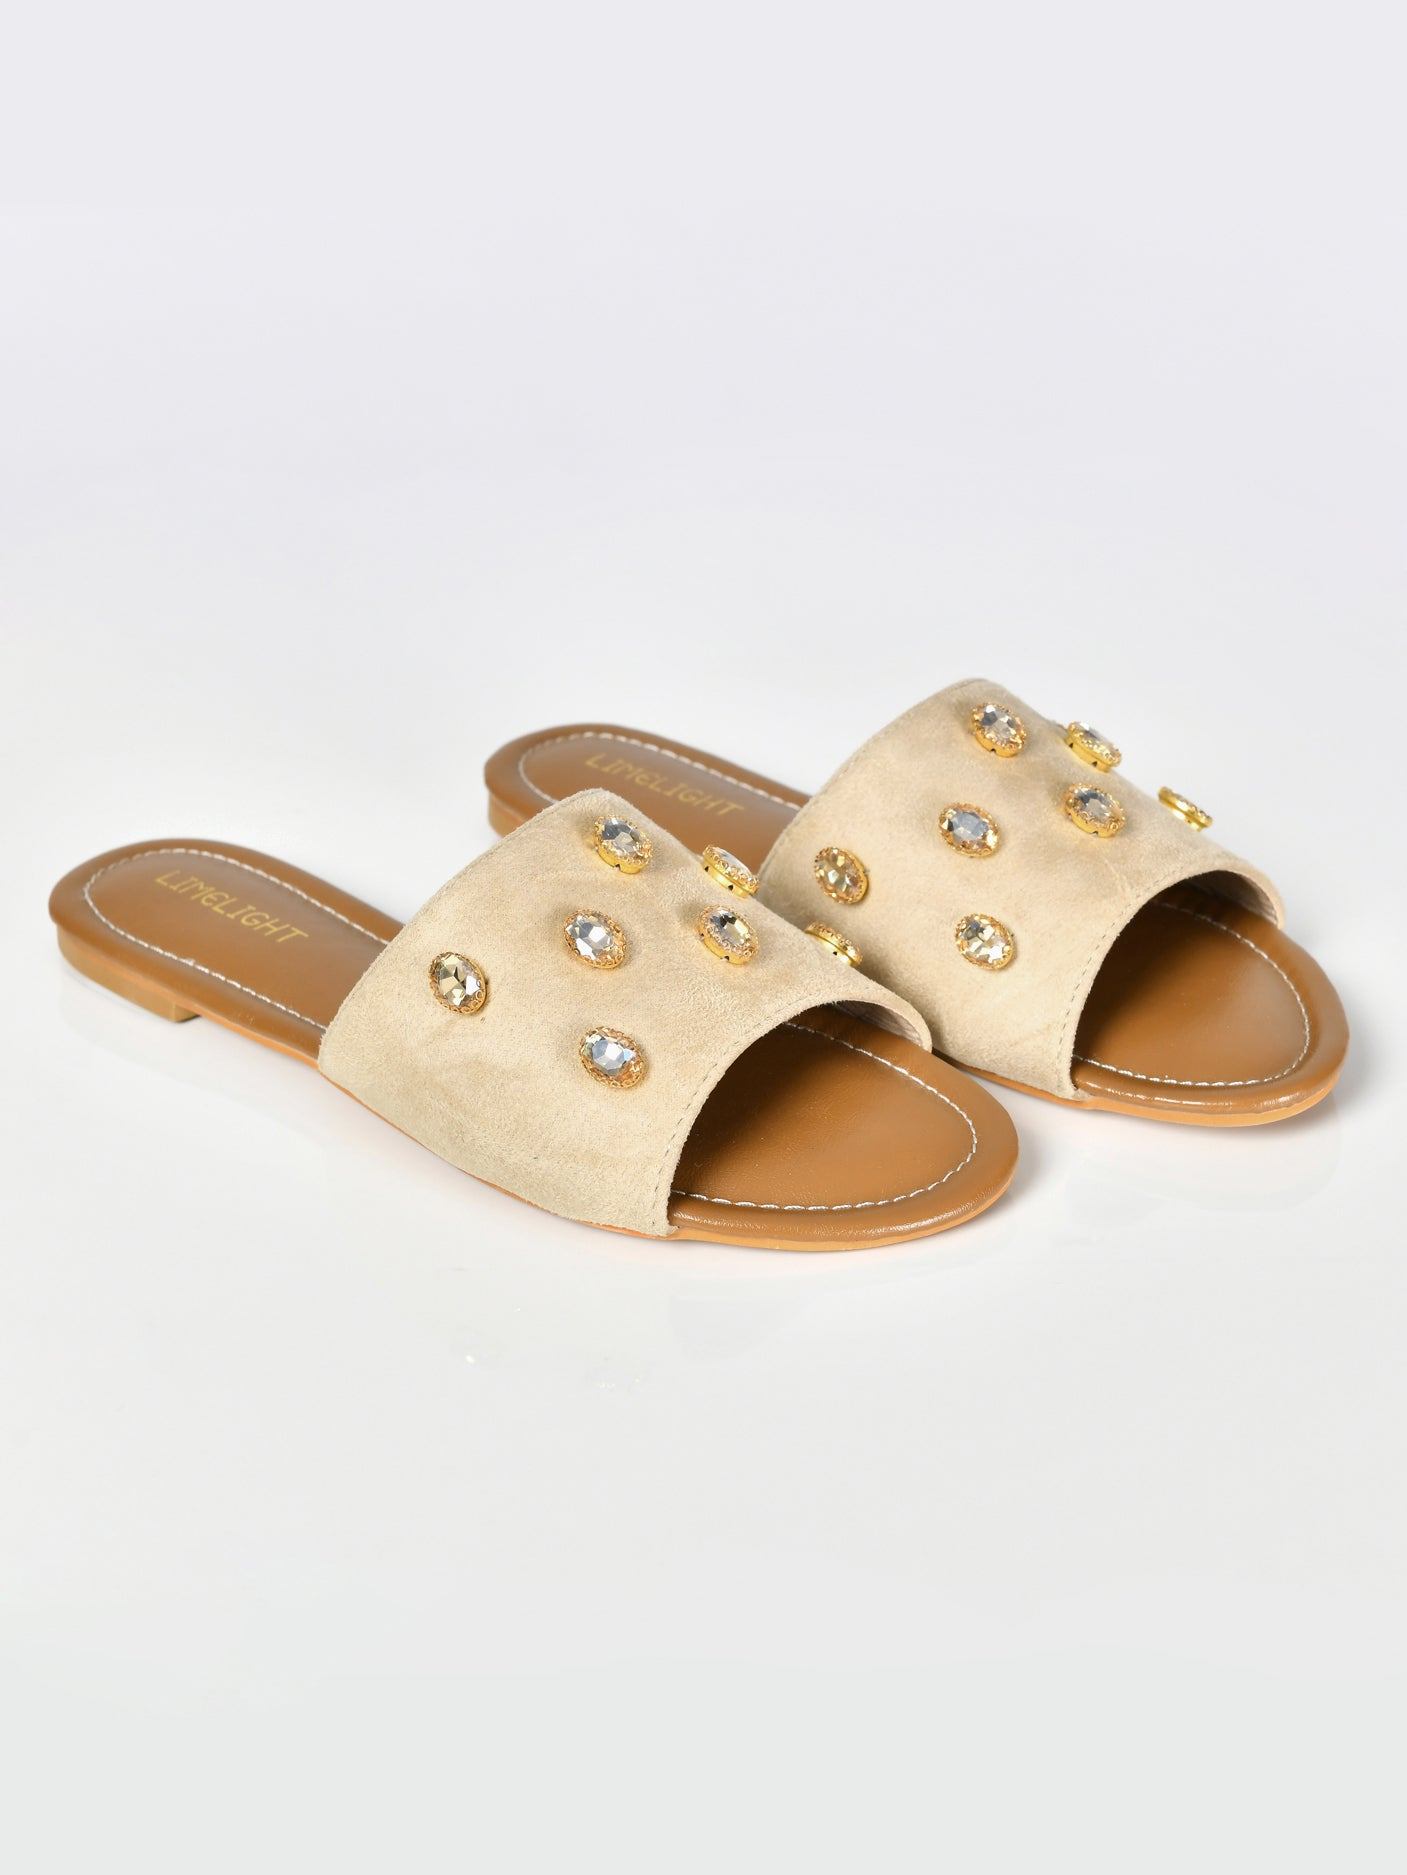 Stone Studded Sandals-Beige